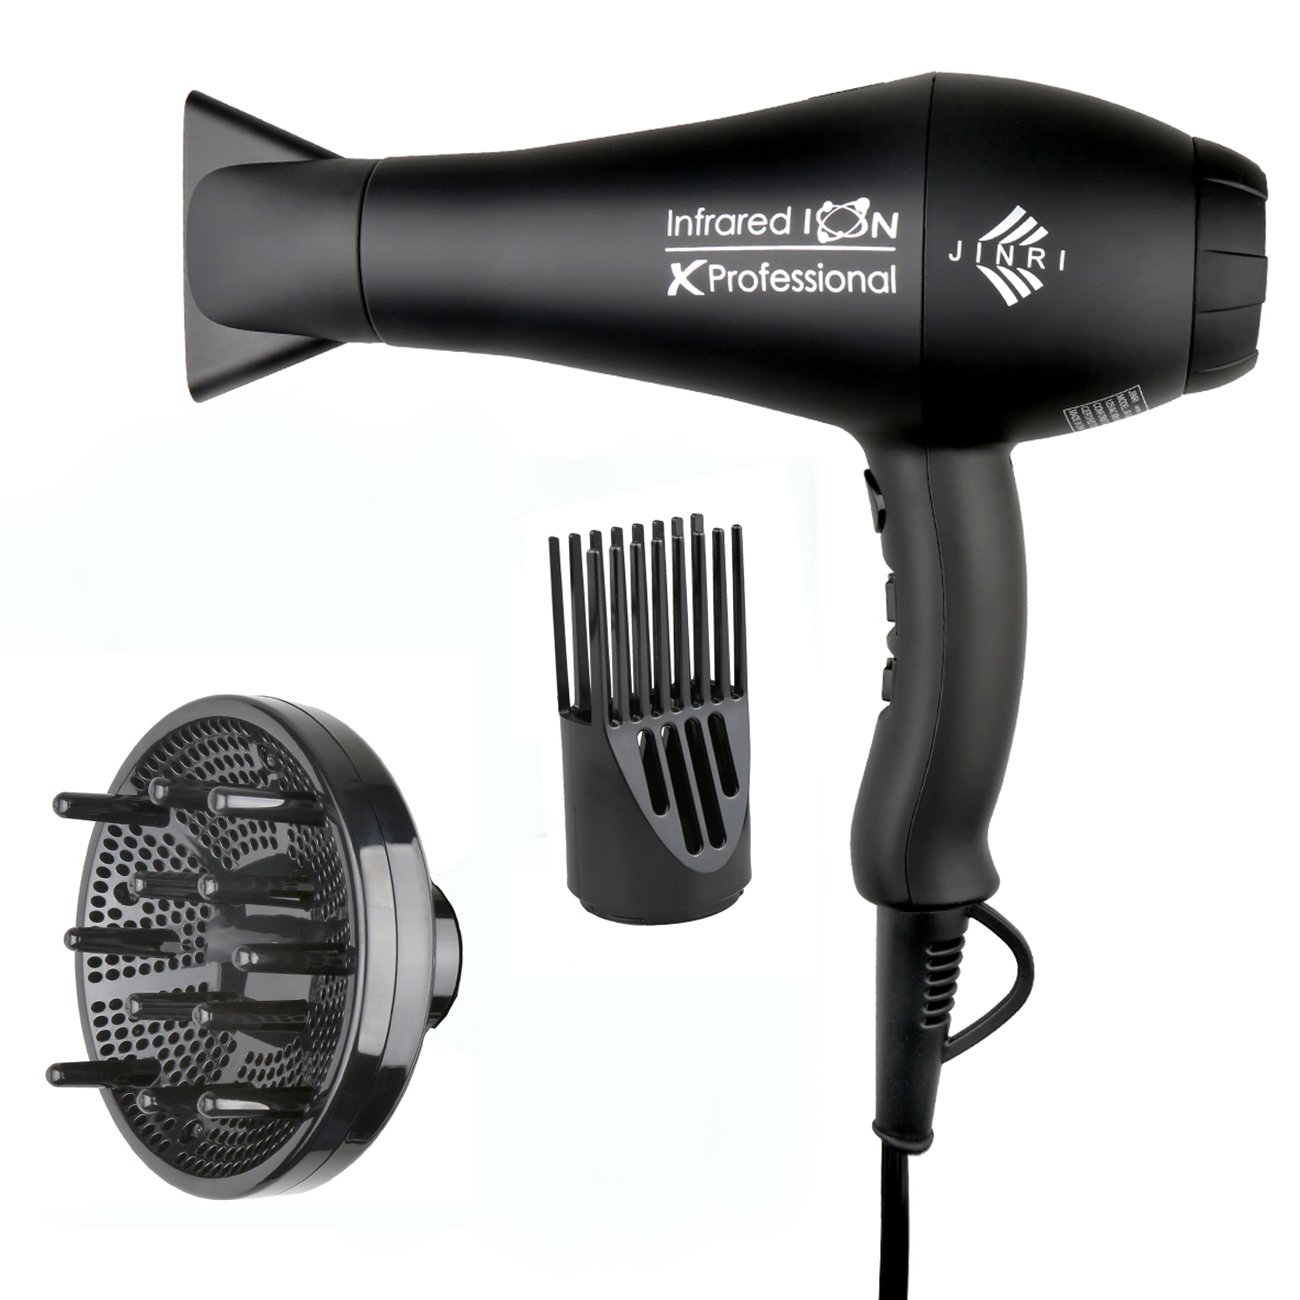 1875w Professional Salon Hair Dryer,Negative Ionic Hair Blow Dryer,AC Motor Infrared Heat Low Noise Hair Dryer,with Concentrator & Diffuser,ETL Certified, Blackr